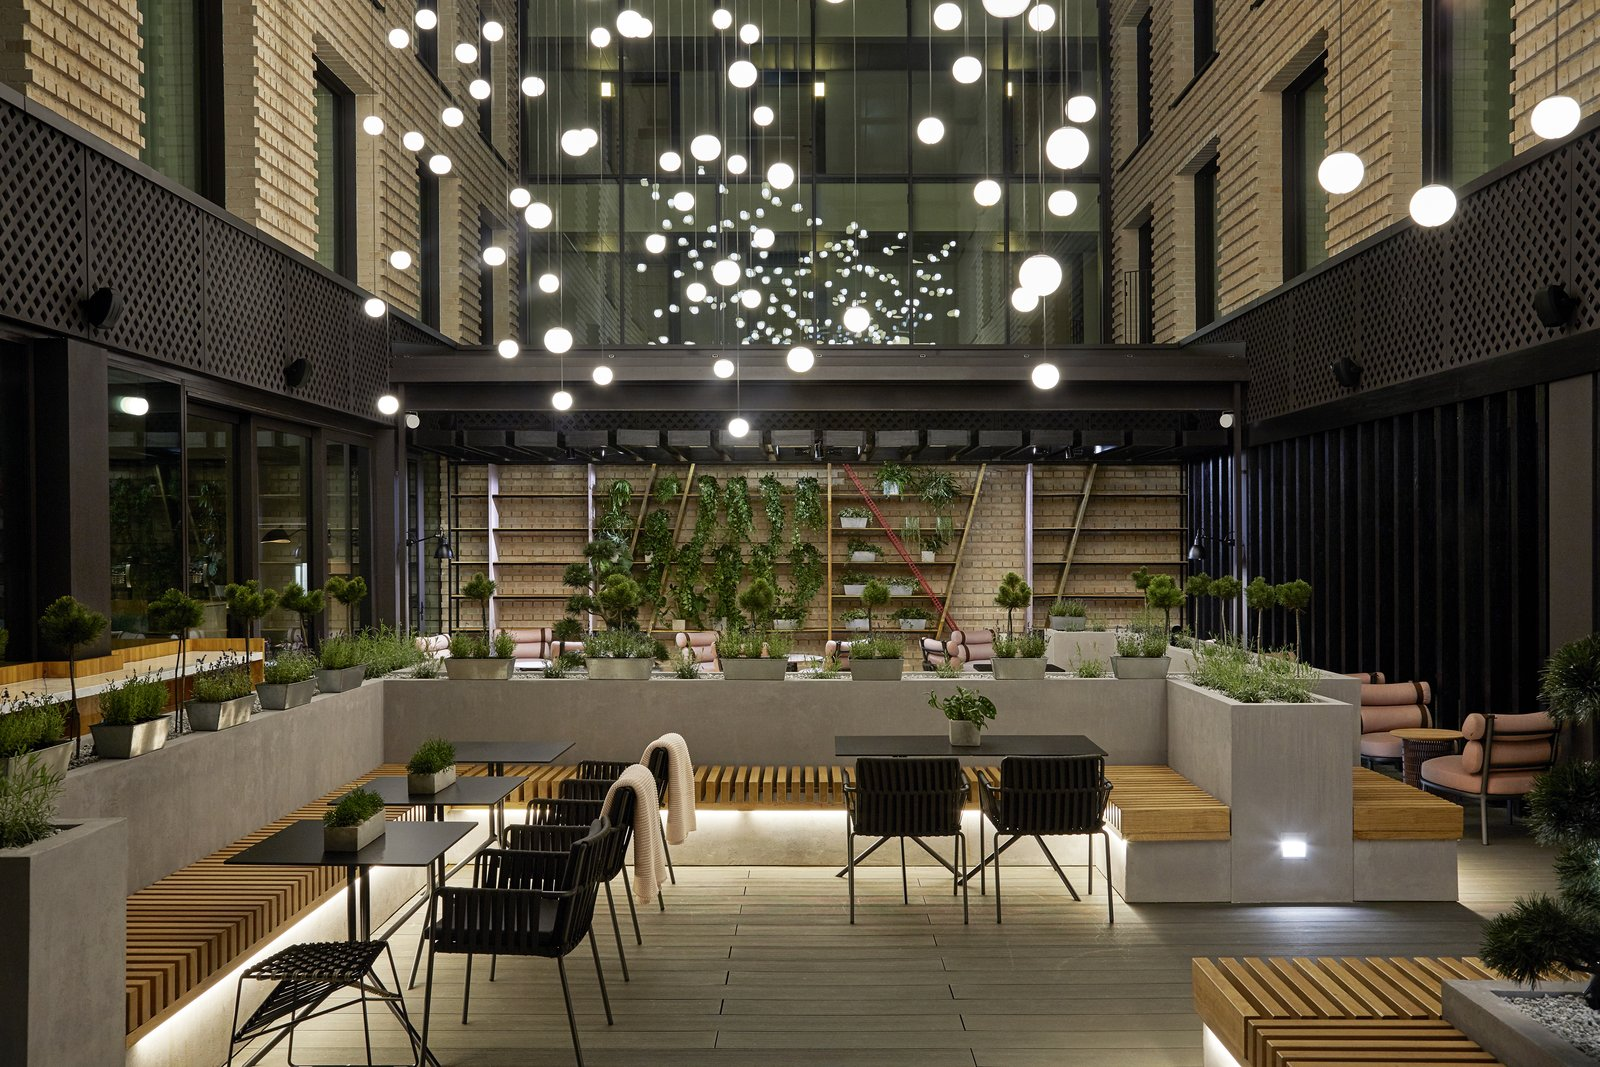 Dining Room, Chair, Pendant Lighting, and Bench  Photo 2 of 15 in This New Hotel in Poland Is a Creative Paradise